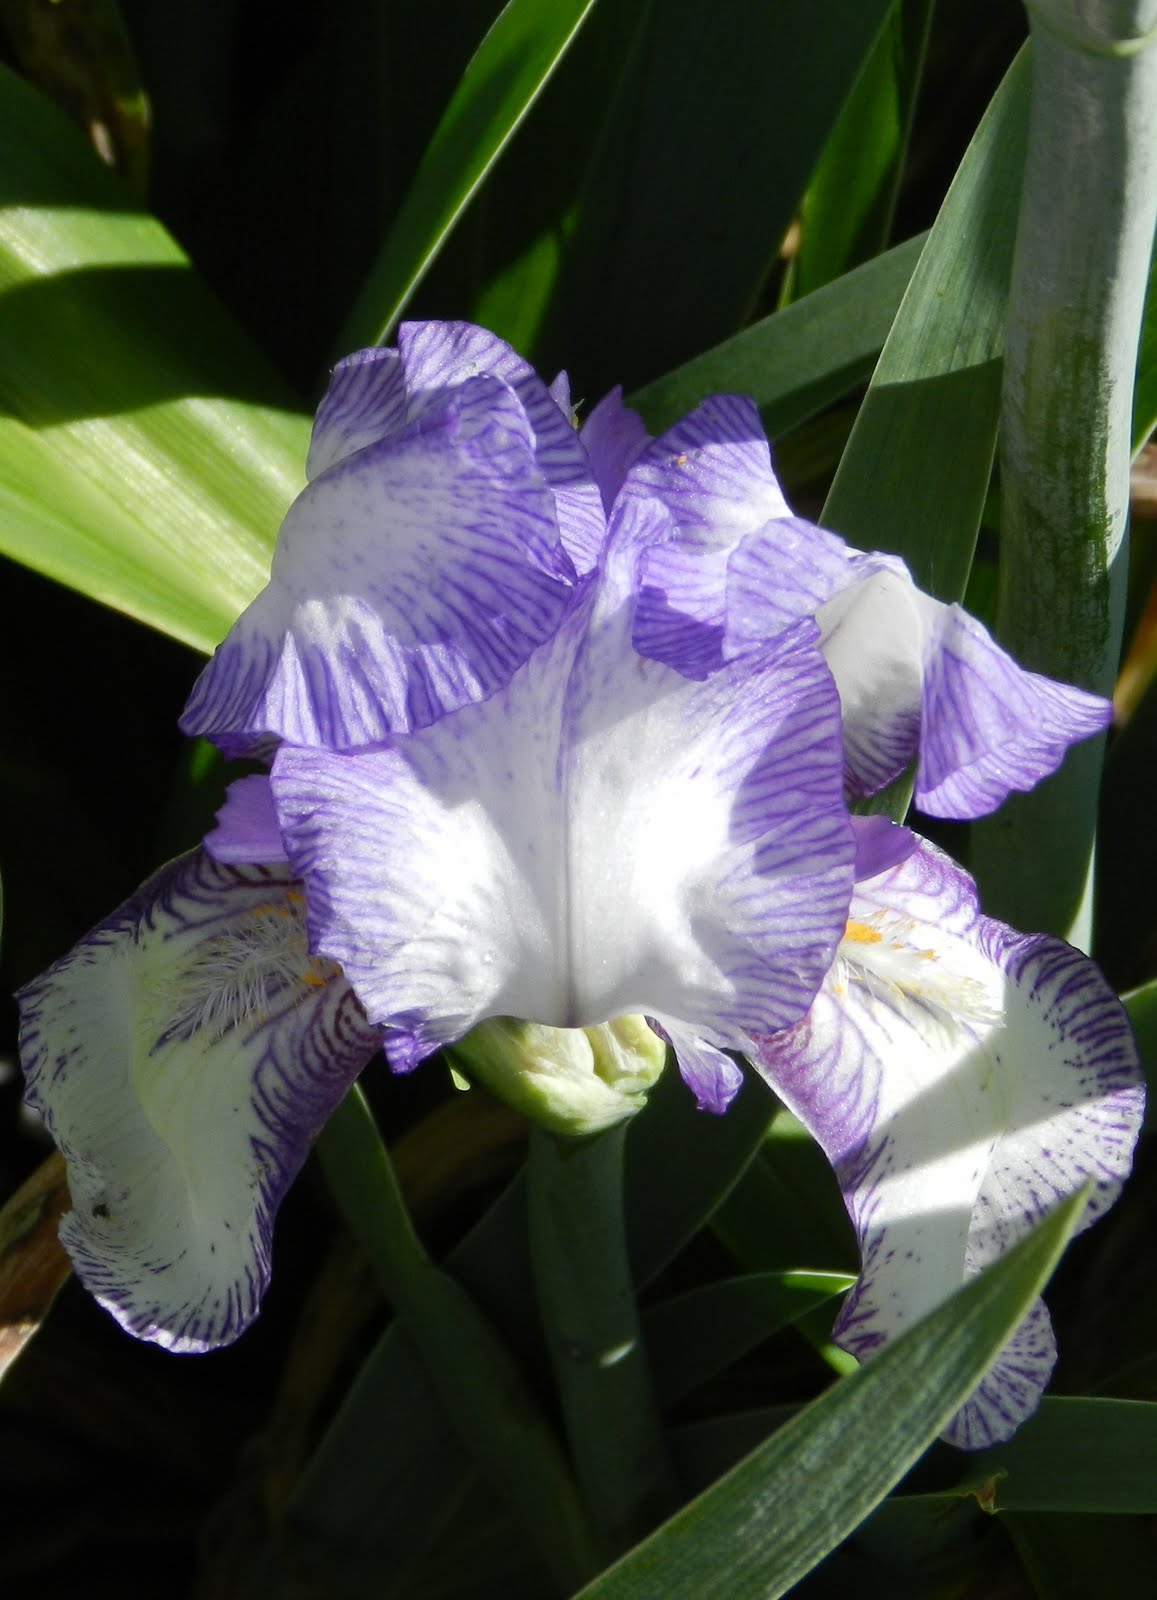 For the love of gardening iris mania chereau germanica bearded iris this is a smaller iris in a huge clump simply covered in blooms registered in 1844 by lemon and bought from select seeds izmirmasajfo Choice Image